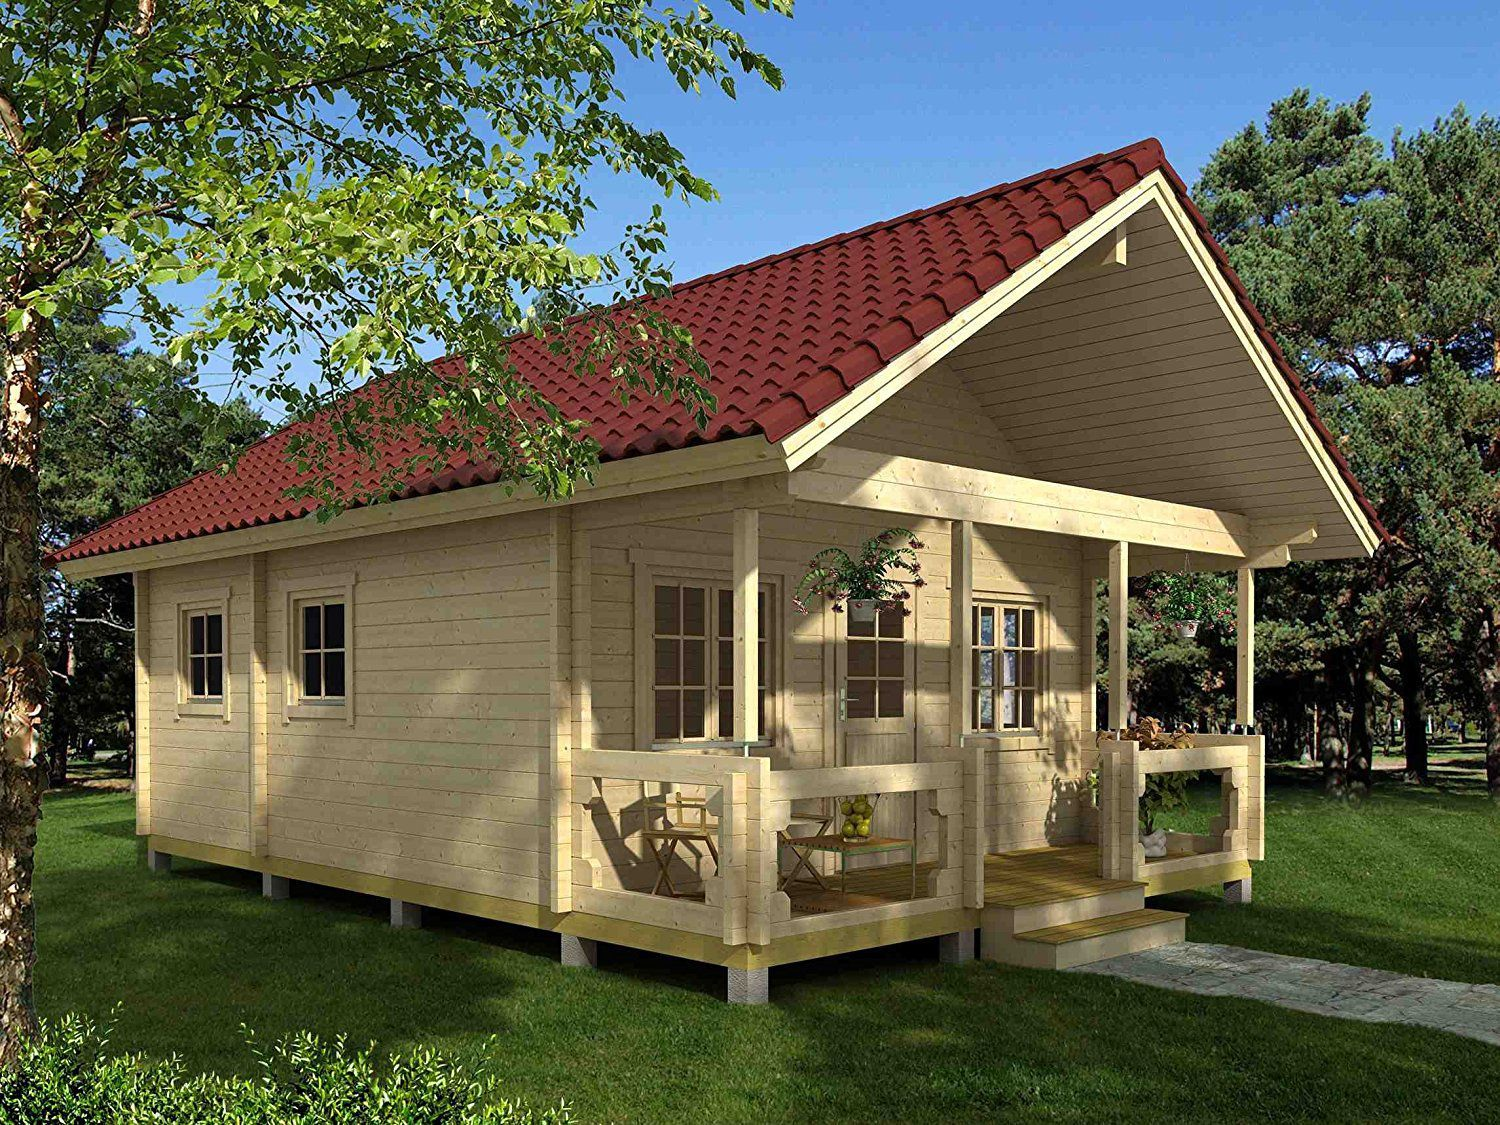 Pleasing 20 Amazing Tiny Houses You Can Actually Buy On Amazon Home Interior And Landscaping Palasignezvosmurscom